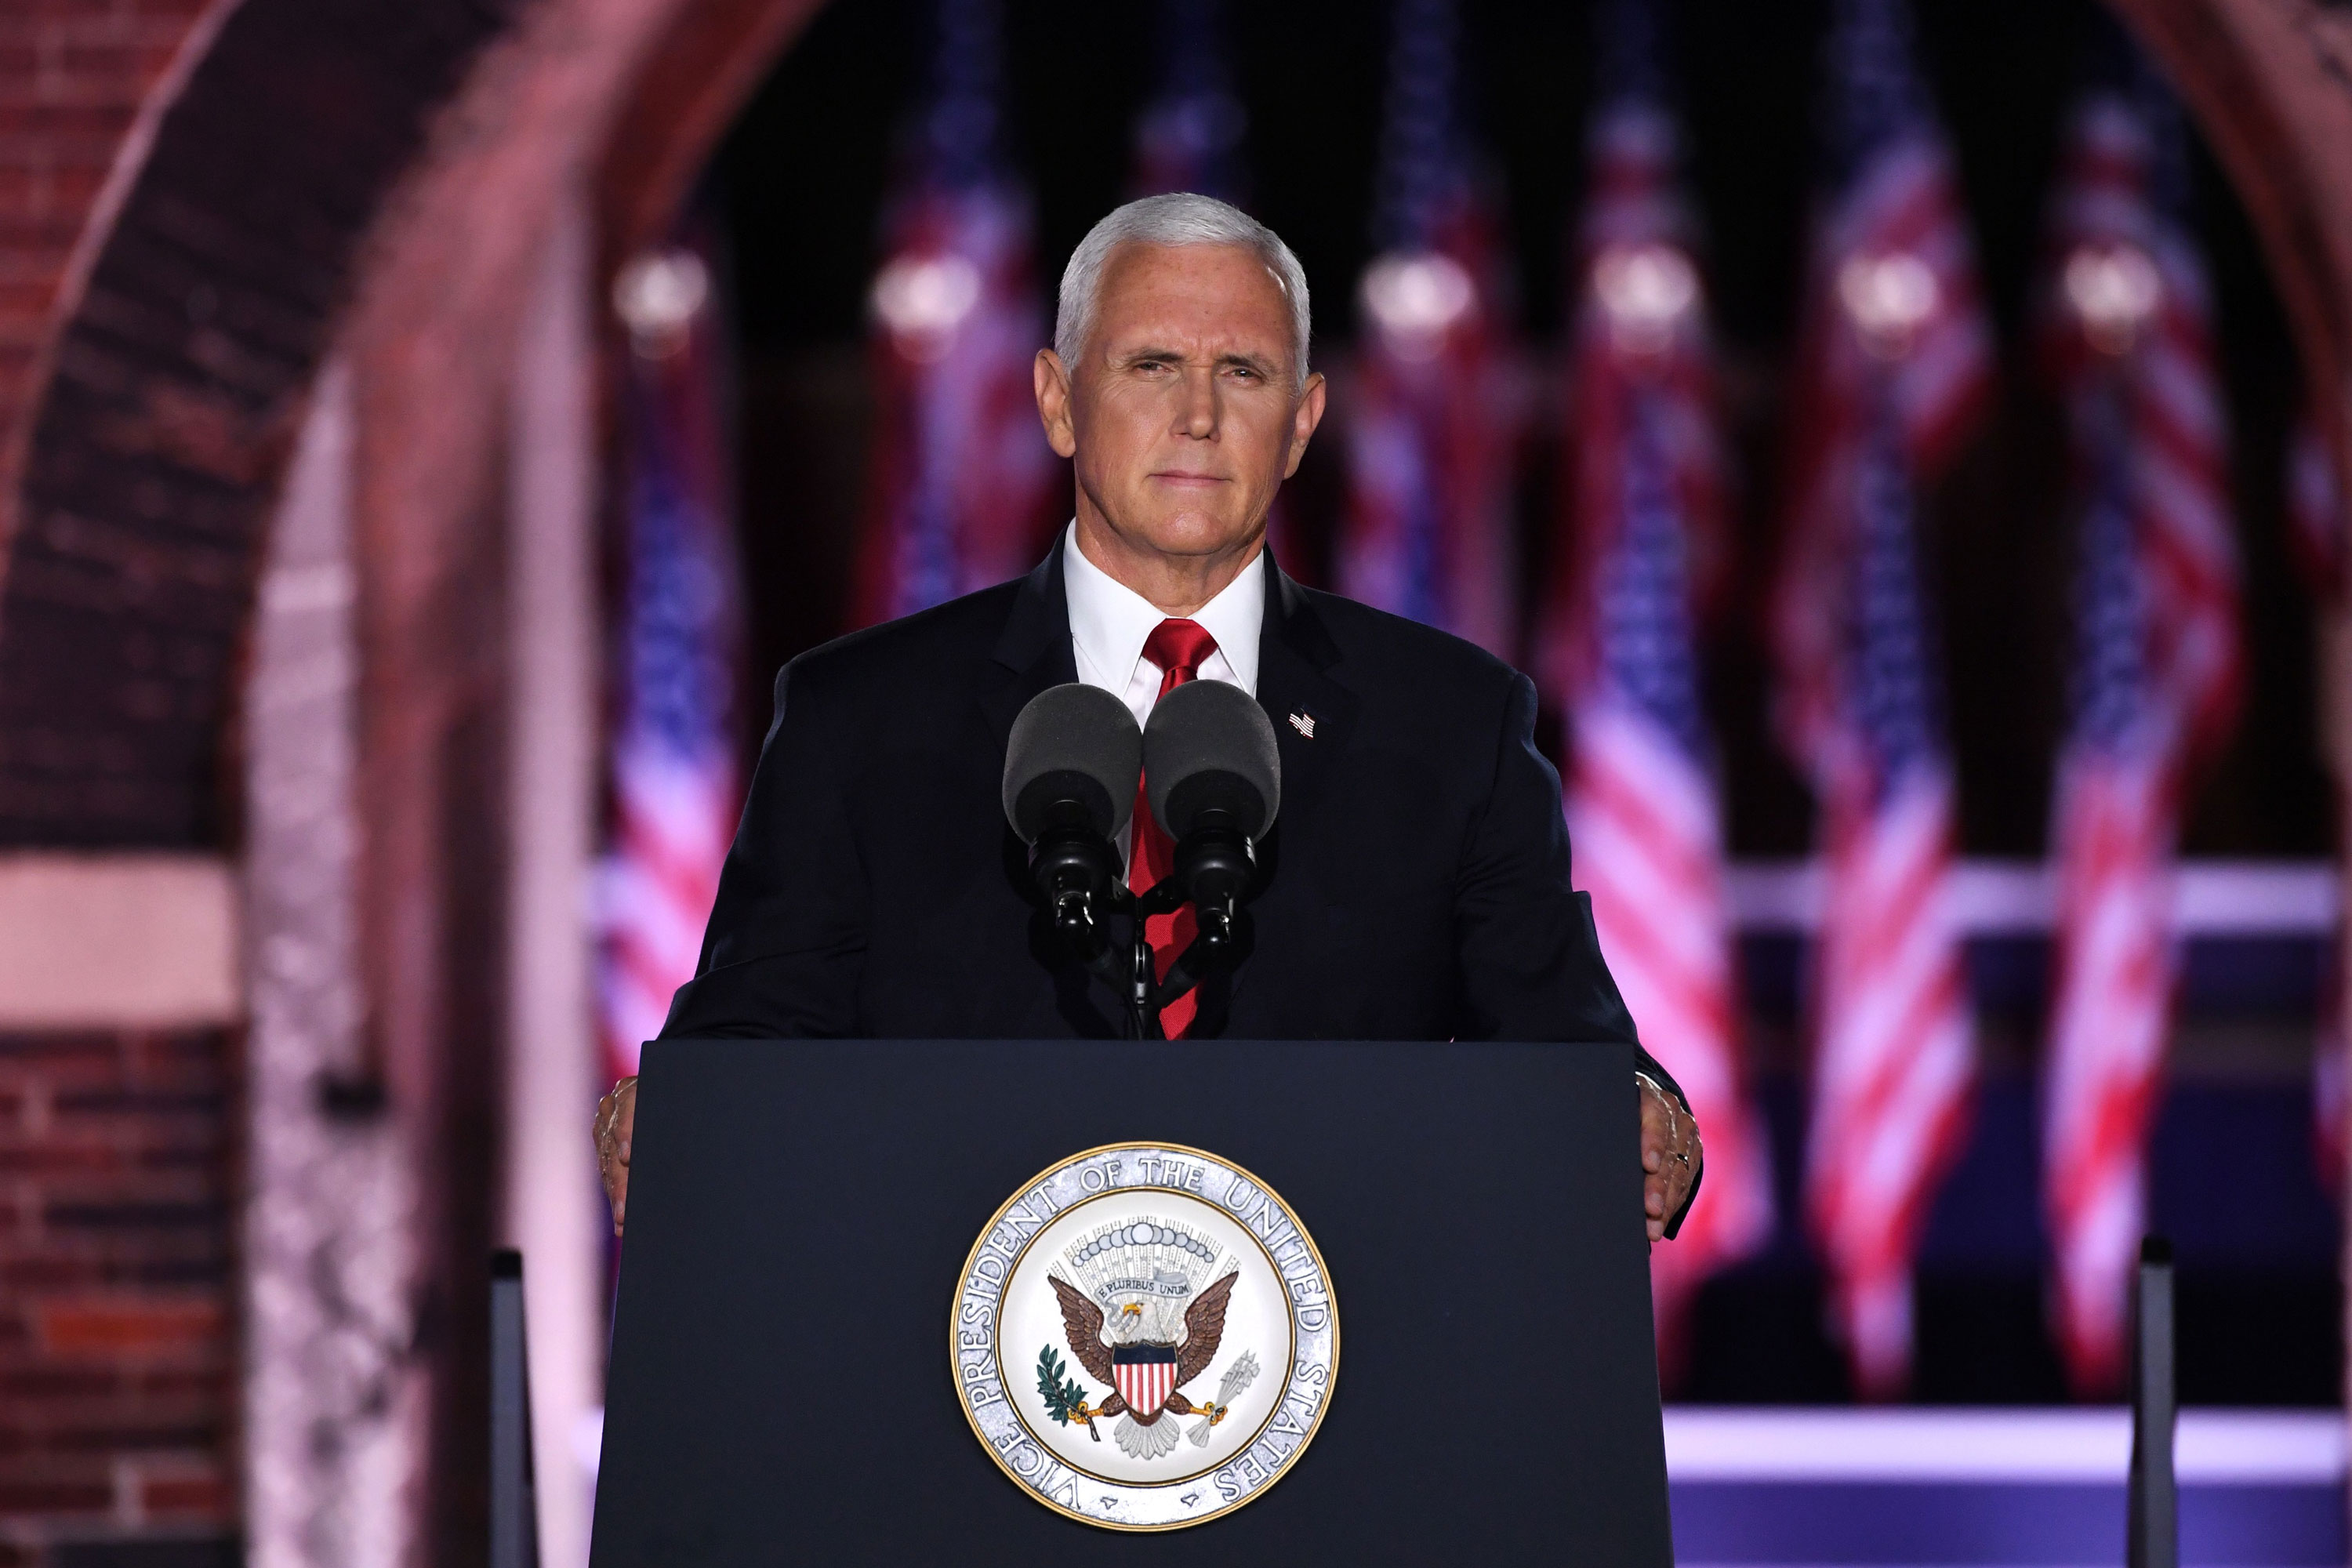 Vice President Mike Pence speaks during the Republican National Convention in Baltimore on August 26.